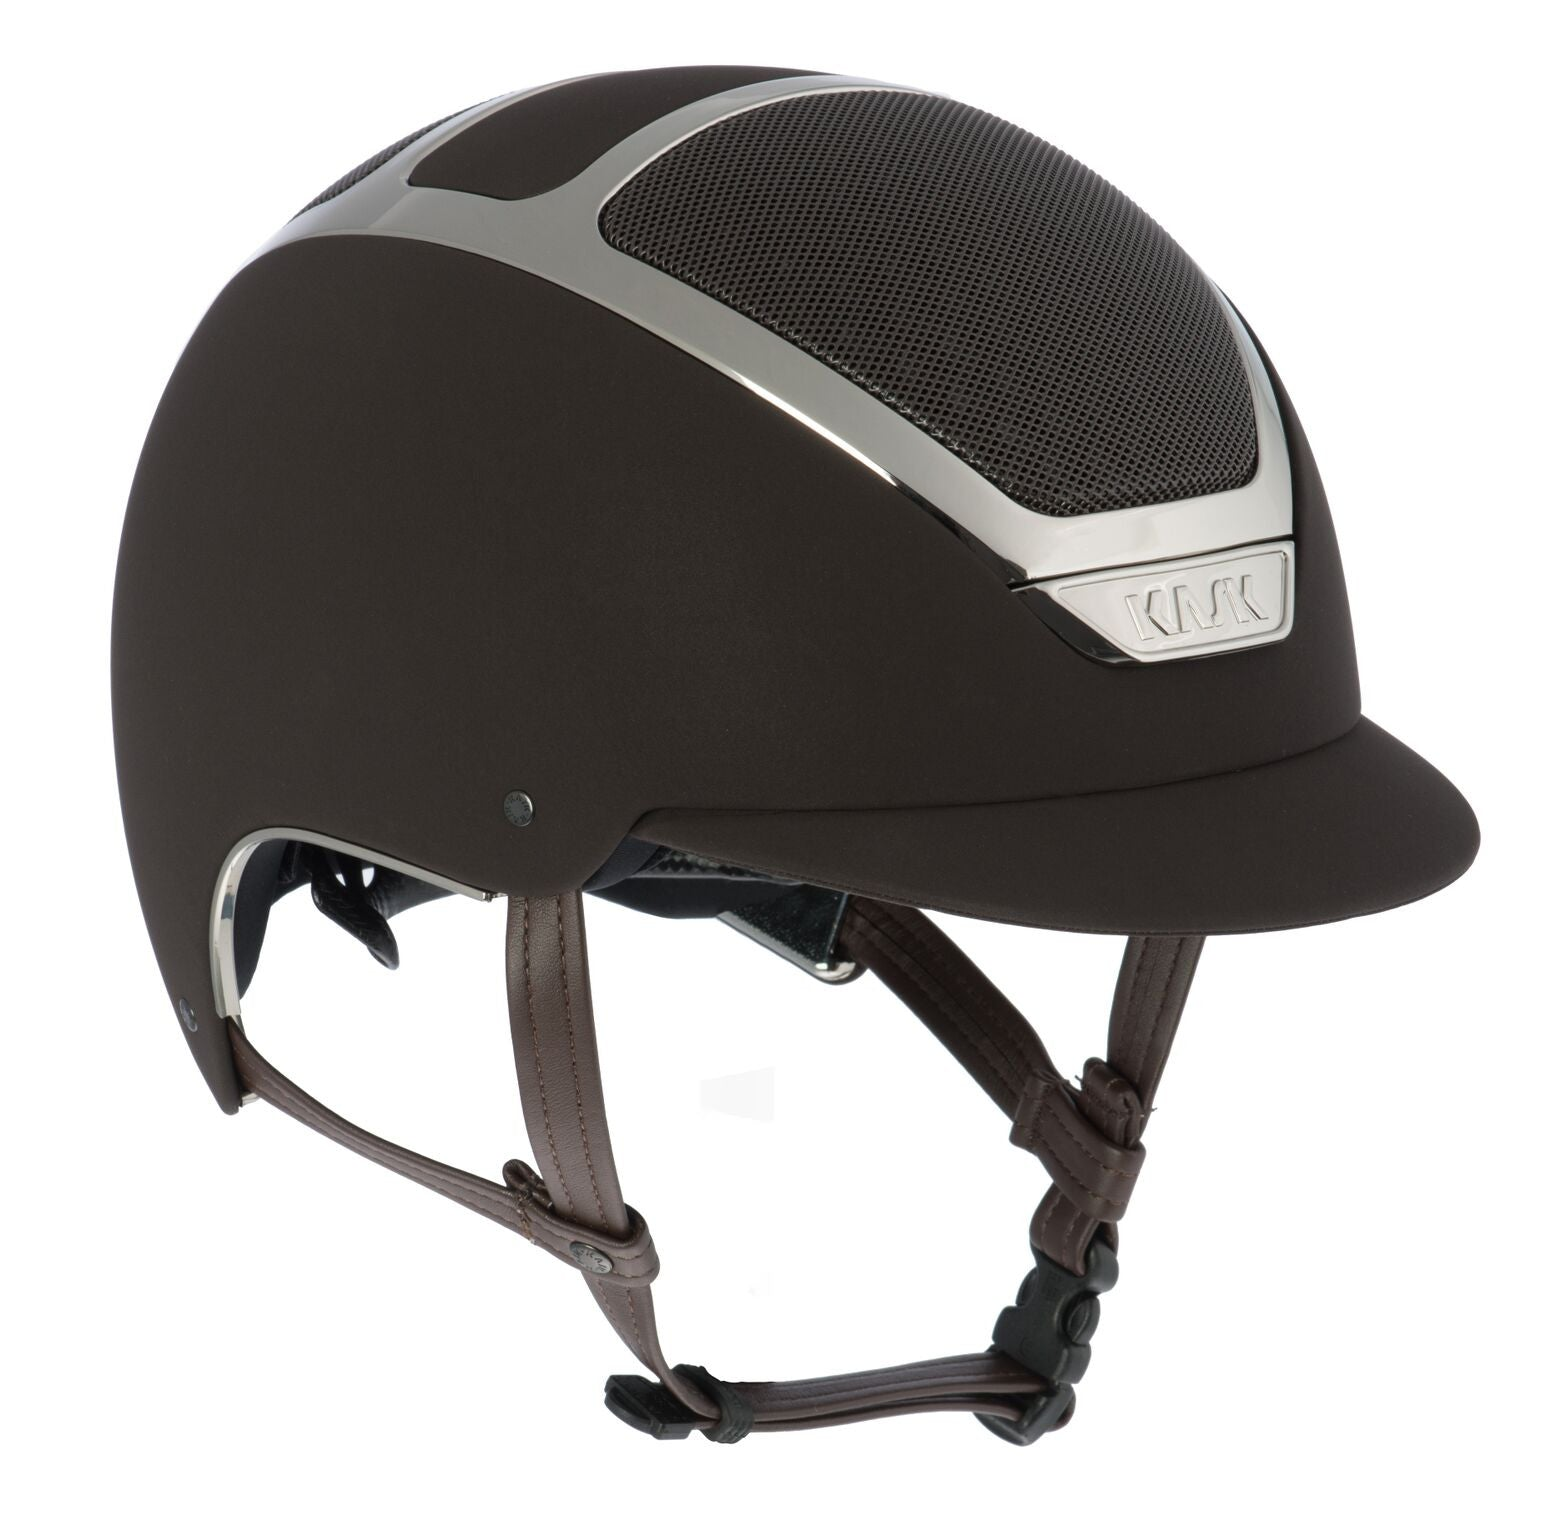 KASK DOGMA CHROME LIGHT - BROWN / SILVER